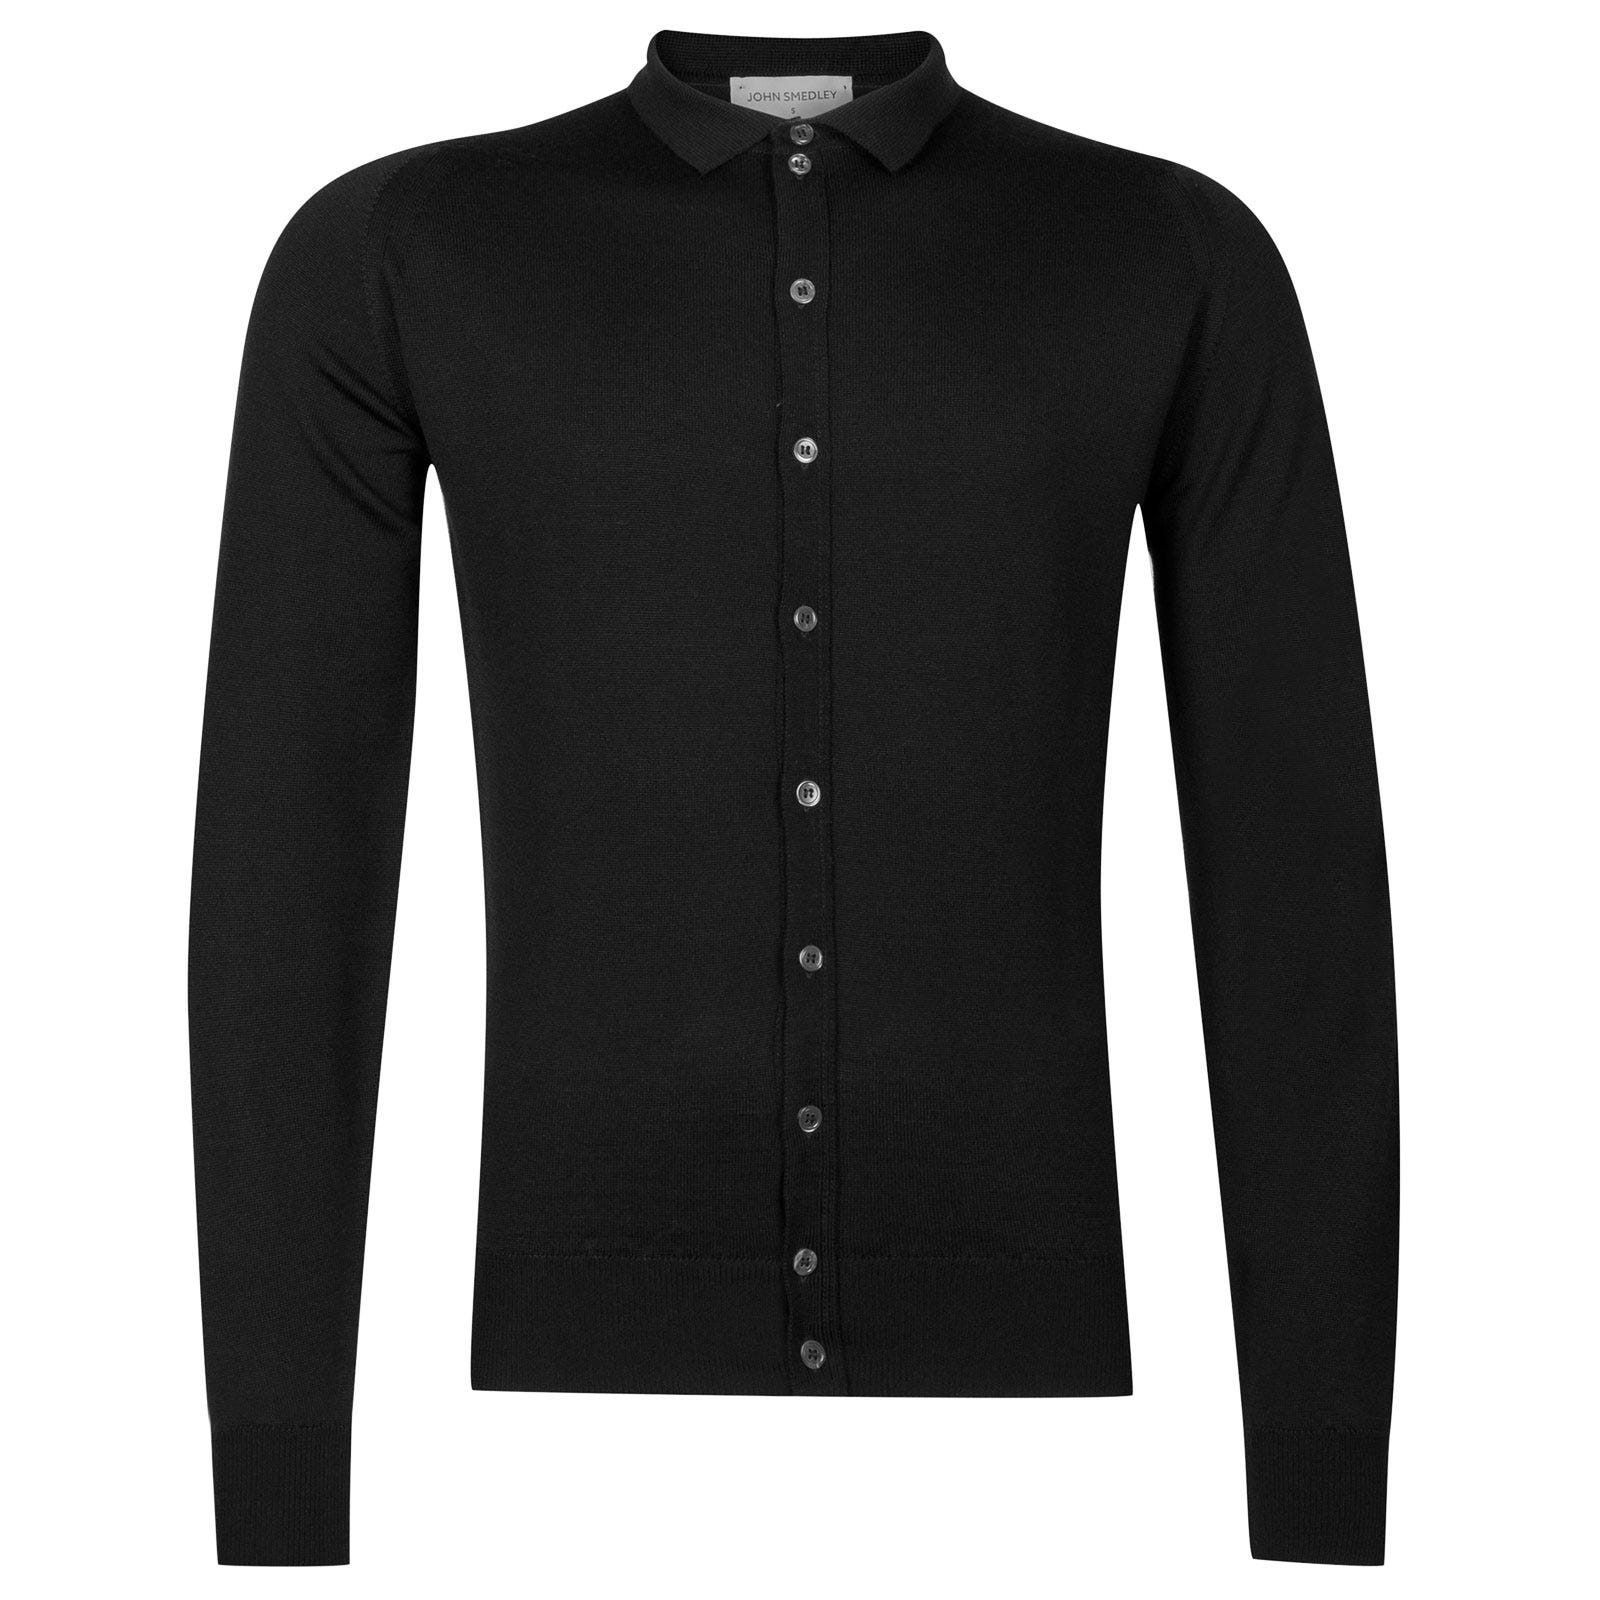 John Smedley parwish Merino Wool Shirt in Black-S